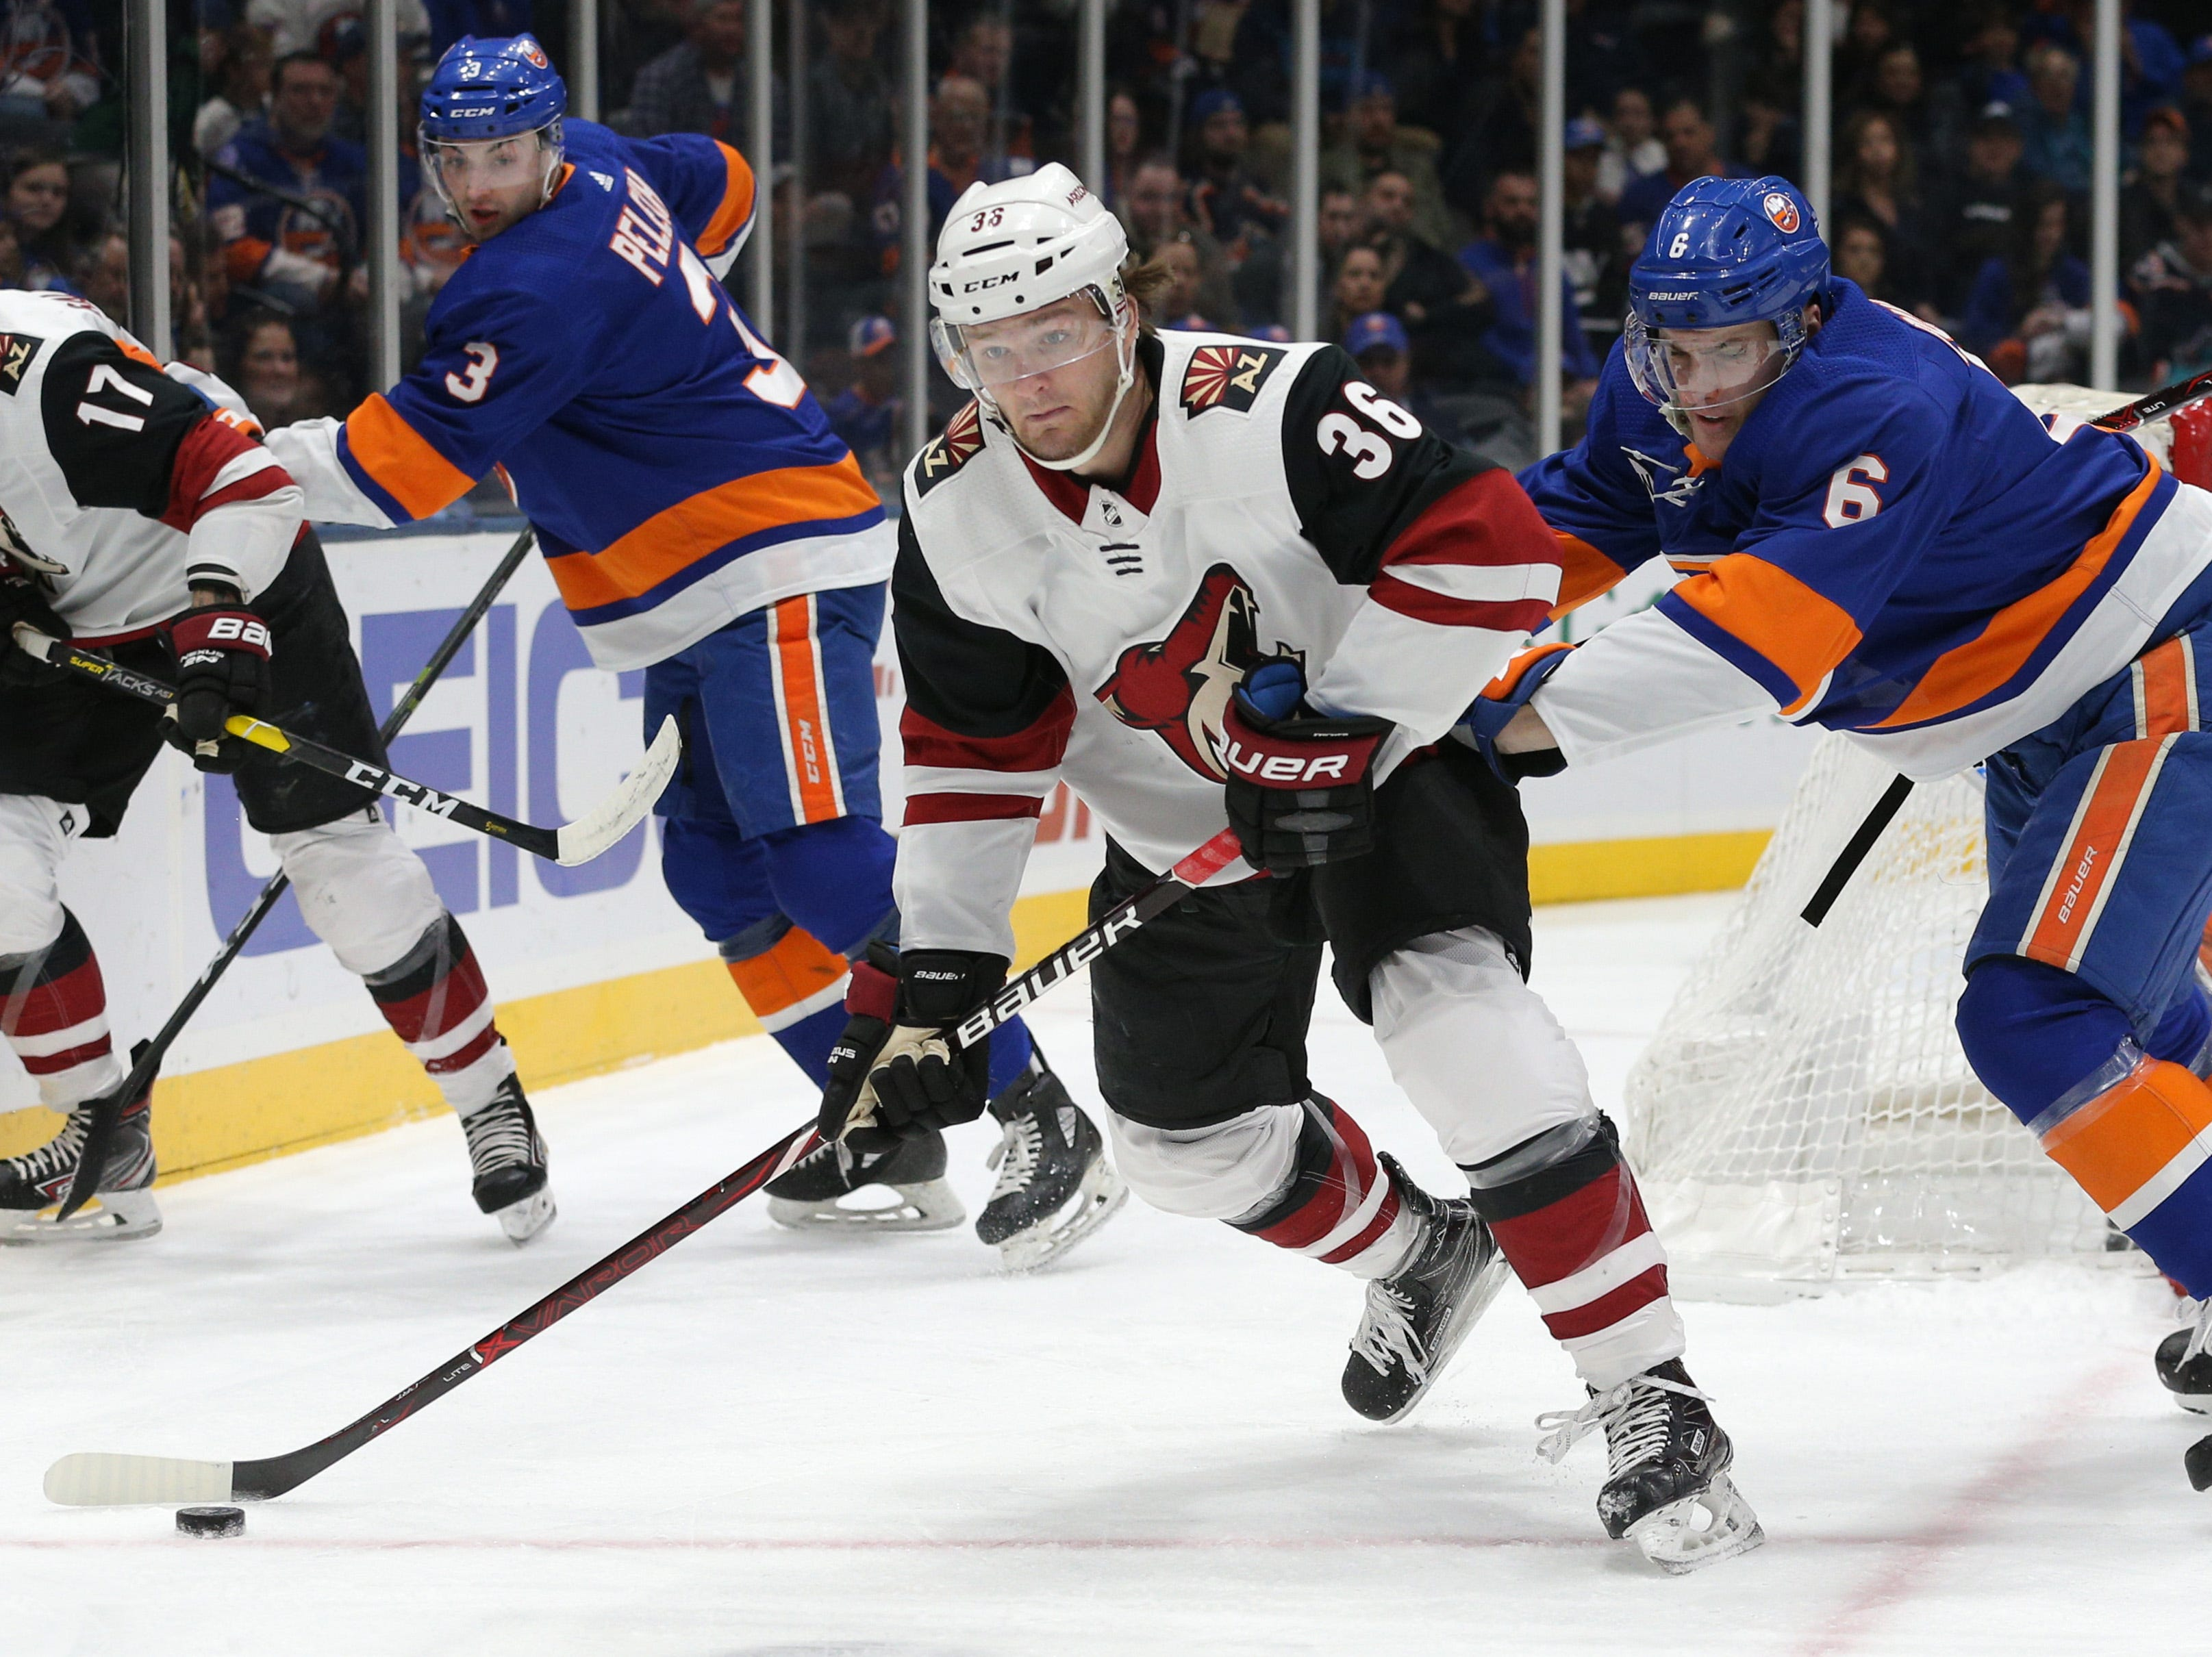 Coyotes right wing Christian Fischer (36) looks to move the puck against Islanders defenseman Ryan Pulock (6) during the first period of a game at Nassau Veterans Memorial Coliseum.